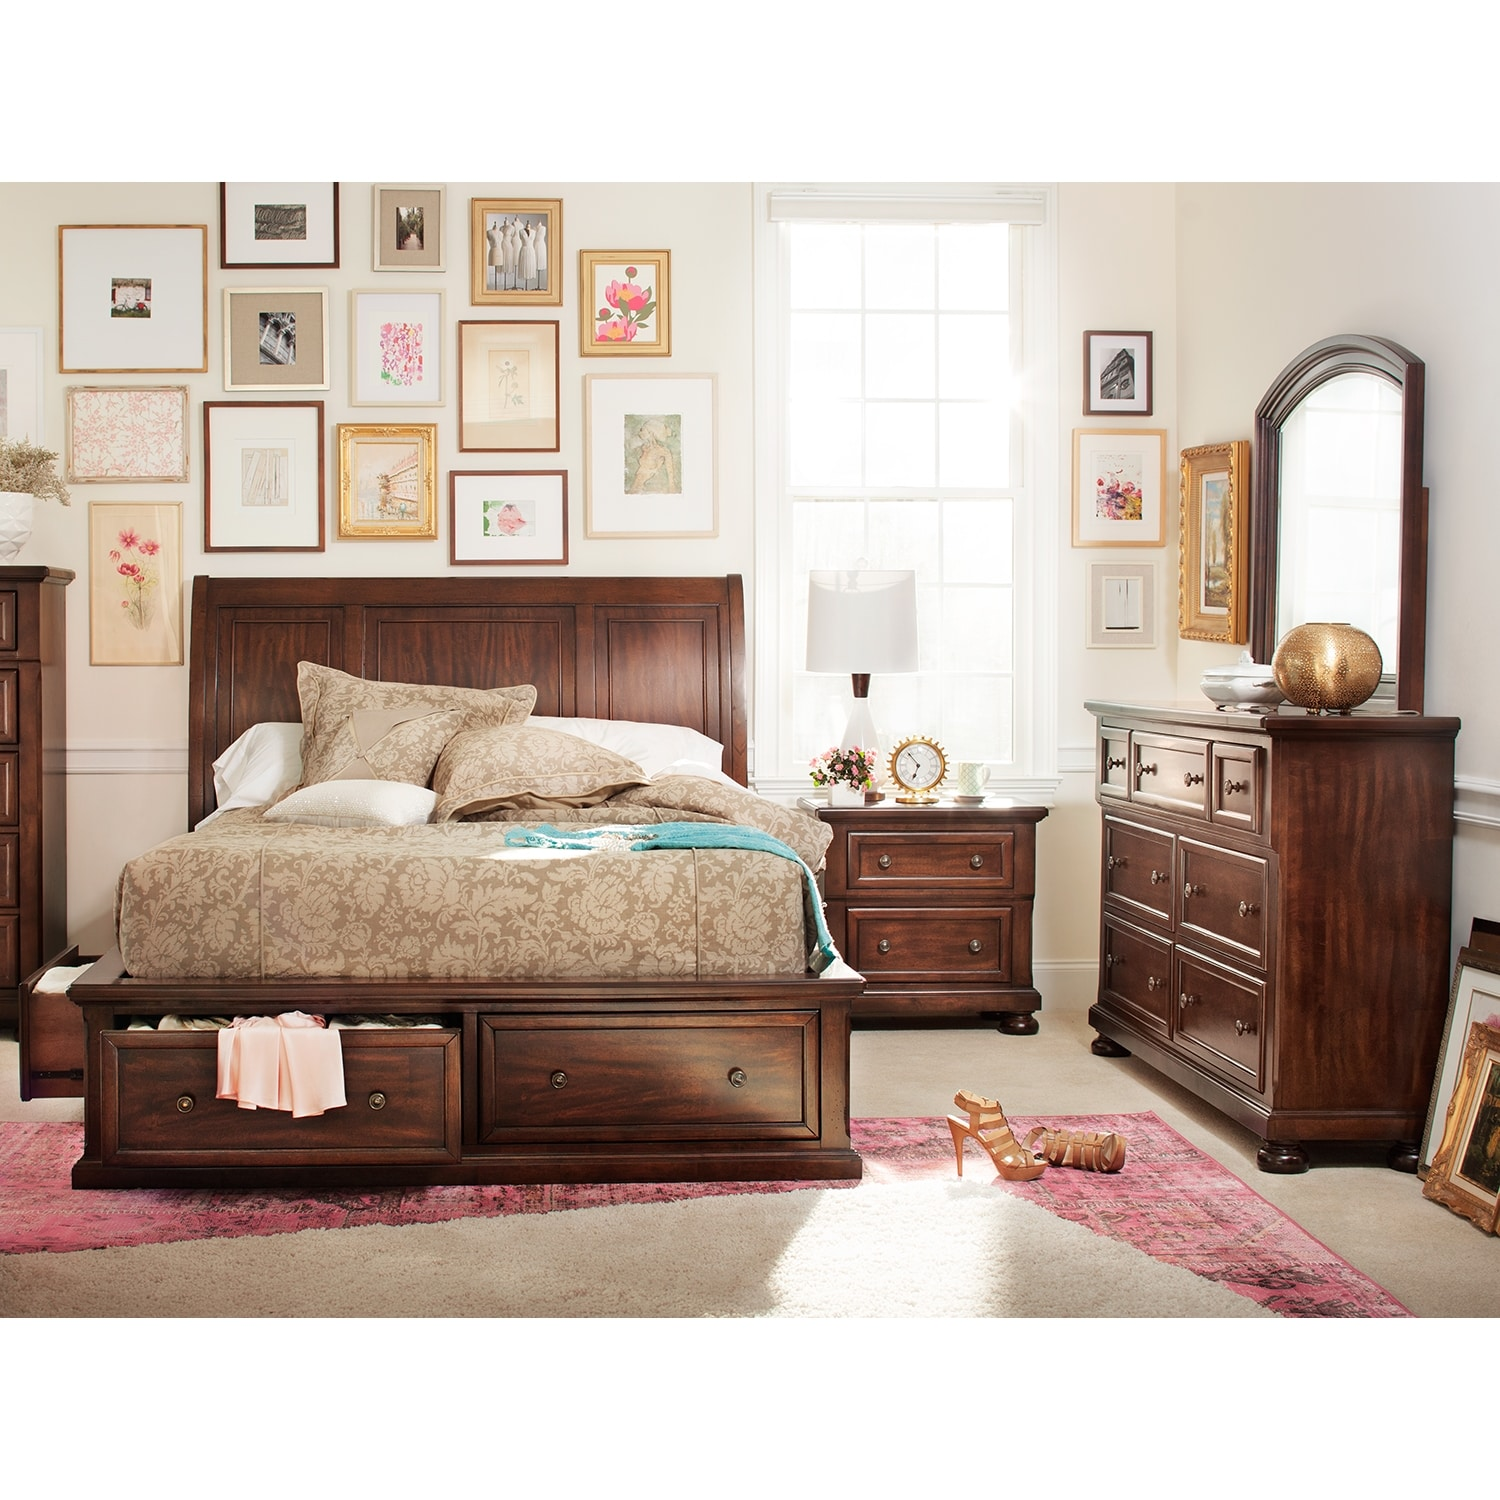 Hanover 6-Piece Queen Storage Bedroom Set - Cherry